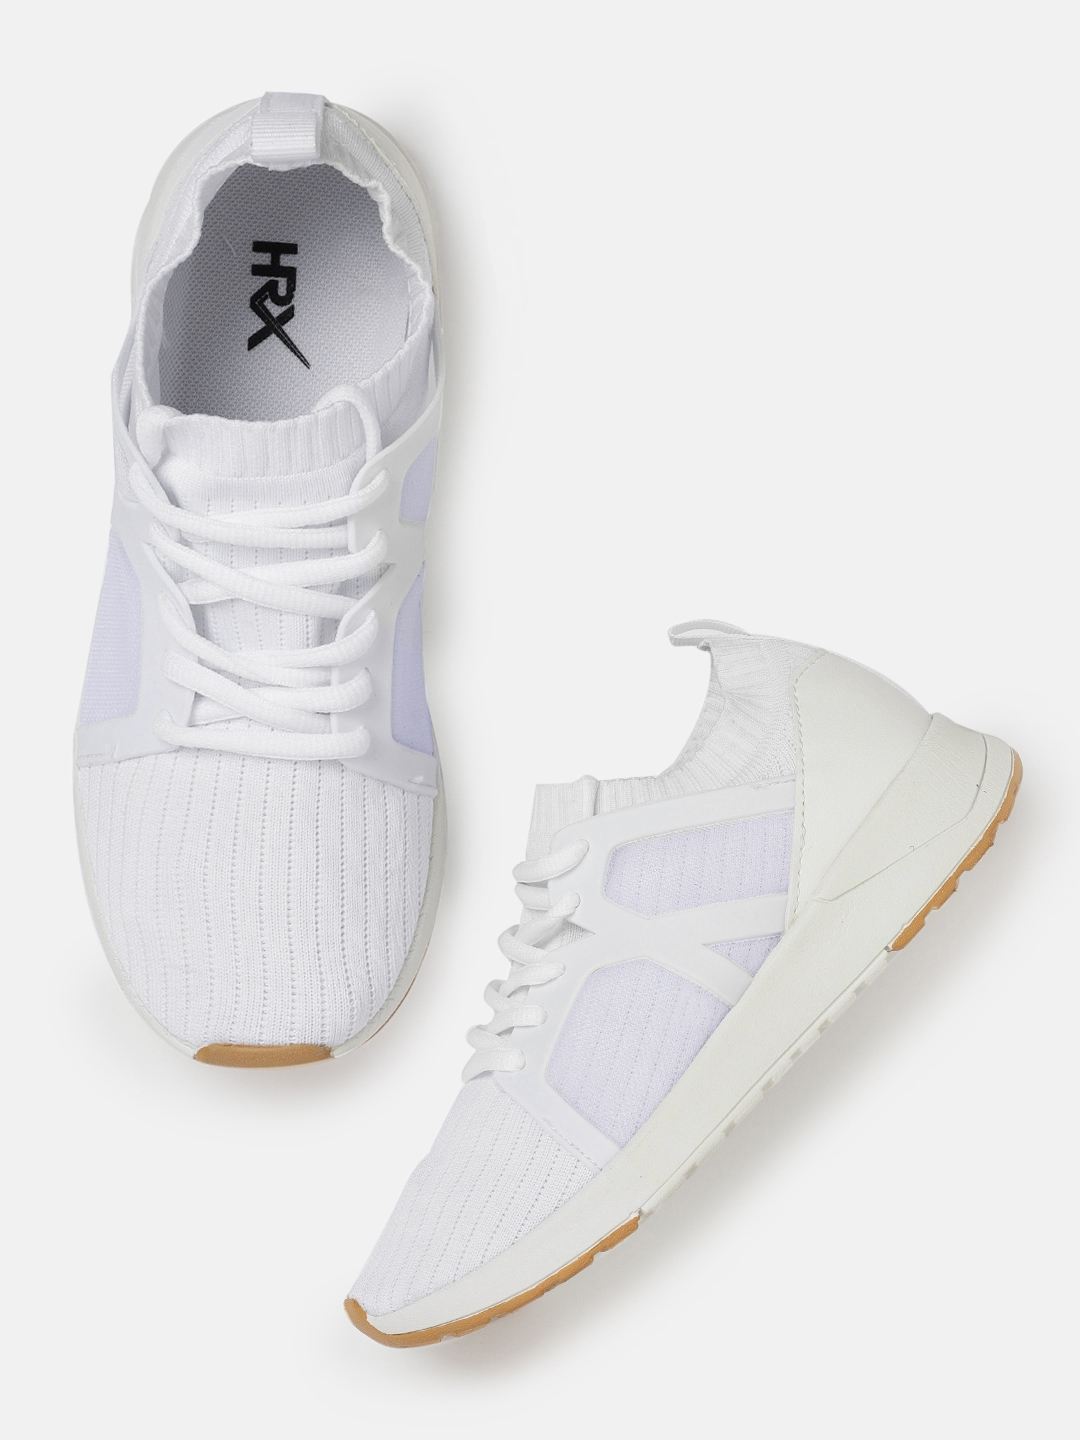 efca4c43269 HRX by Hrithik Roshan Women Fly Sneakers White Self-Striped Sneakers